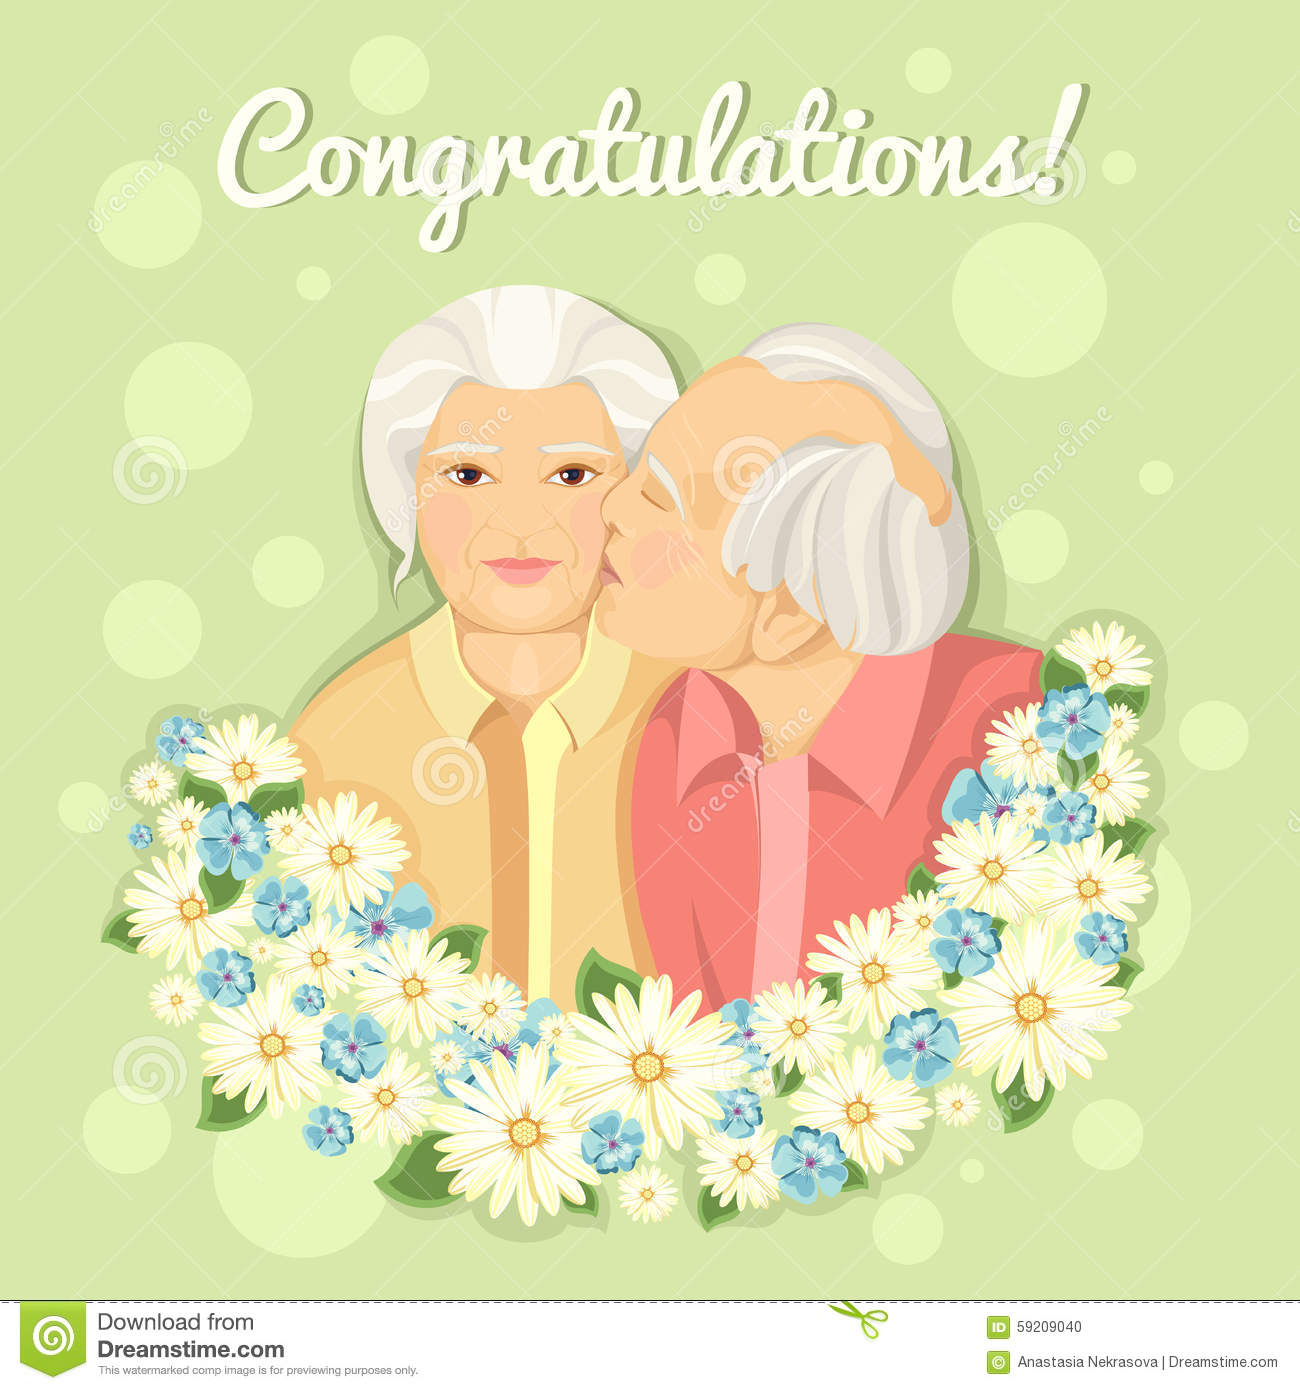 Congratulations to the grandmother of the Day of the Elderly 52